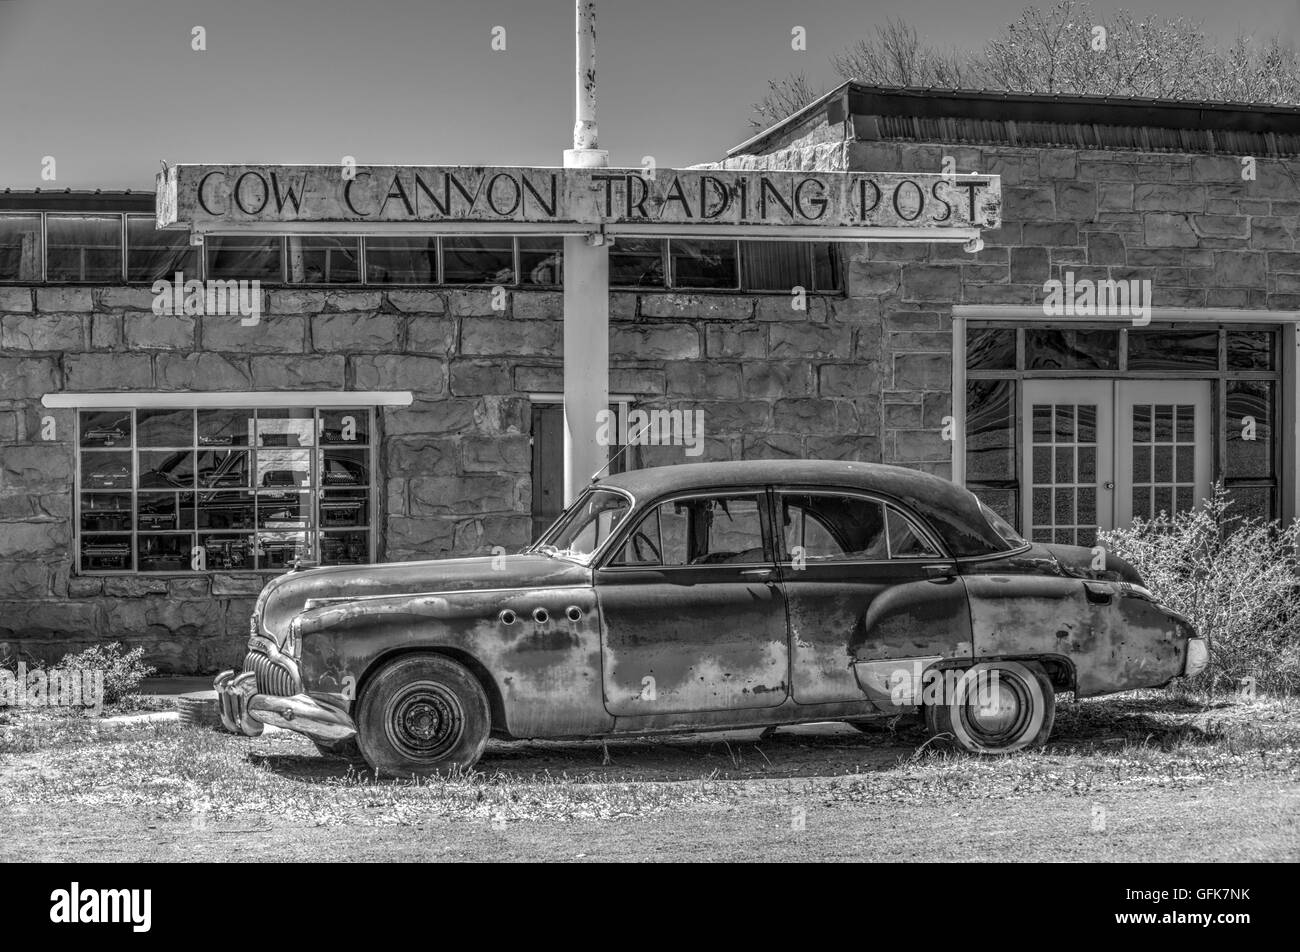 An artistic monochrome treatment of an old car in front of an old trading post in the American desert - Stock Image